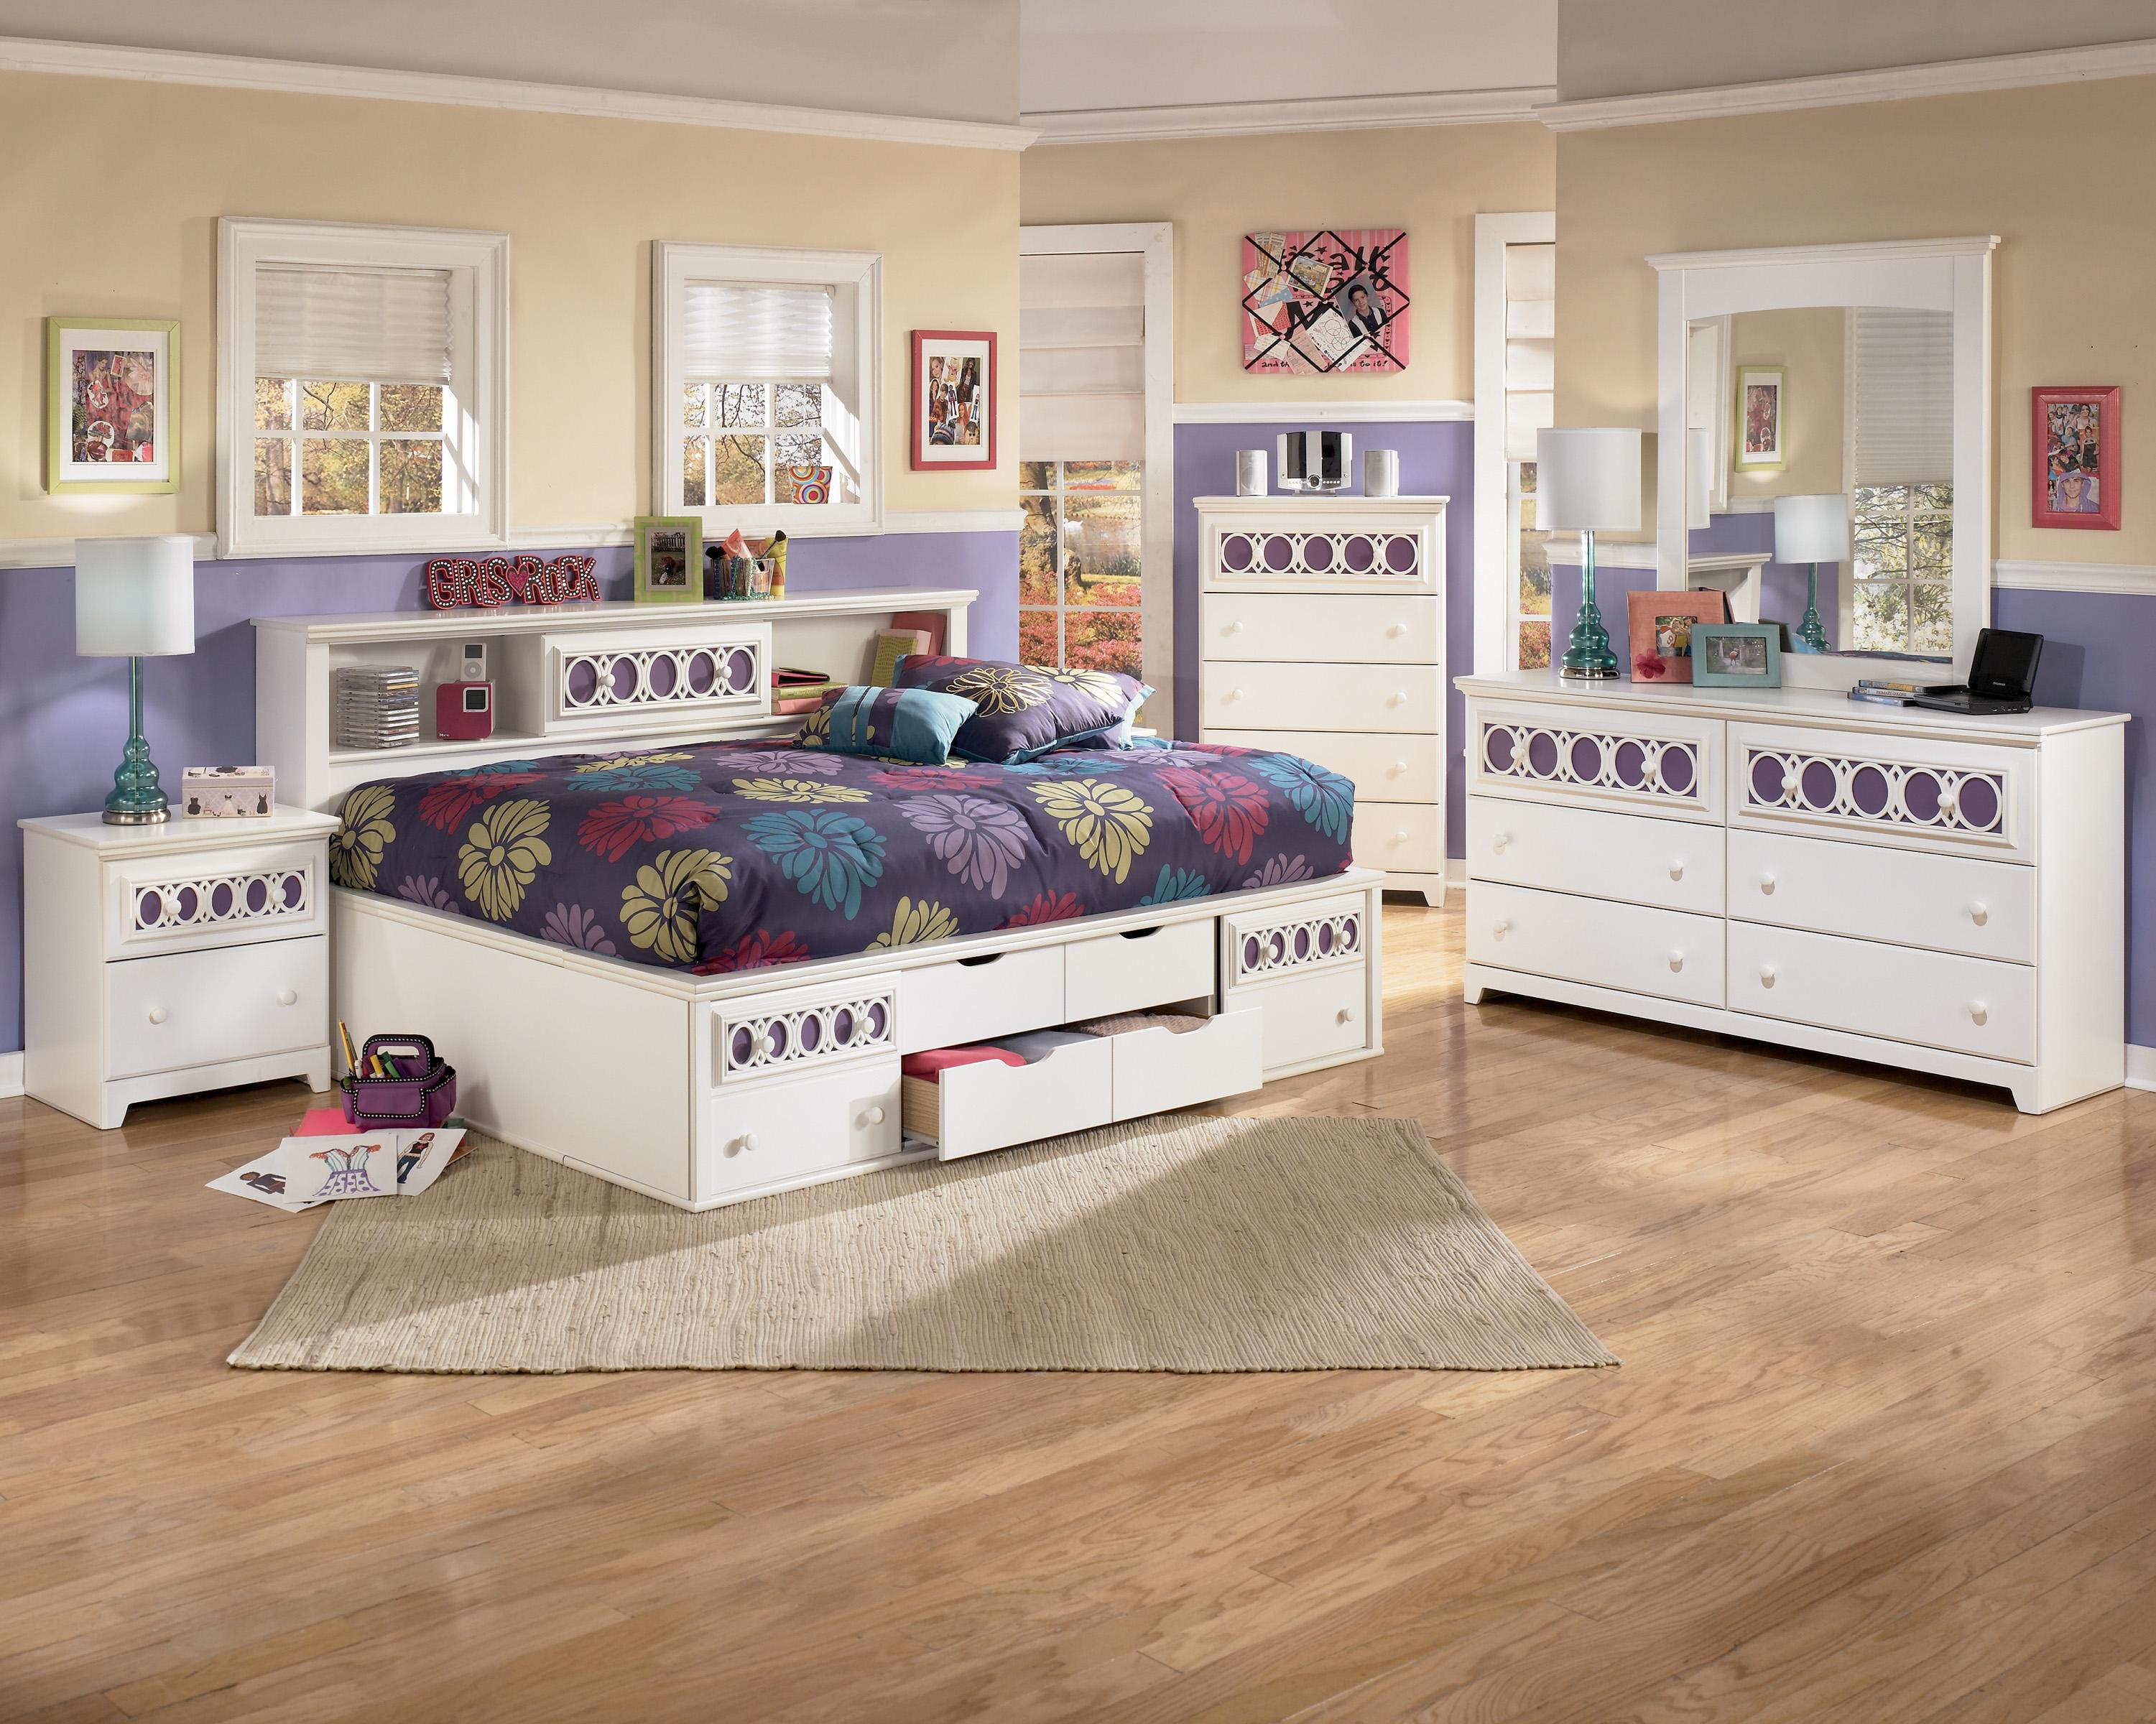 Full Bedside Bookcase Daybed With Customizable Color